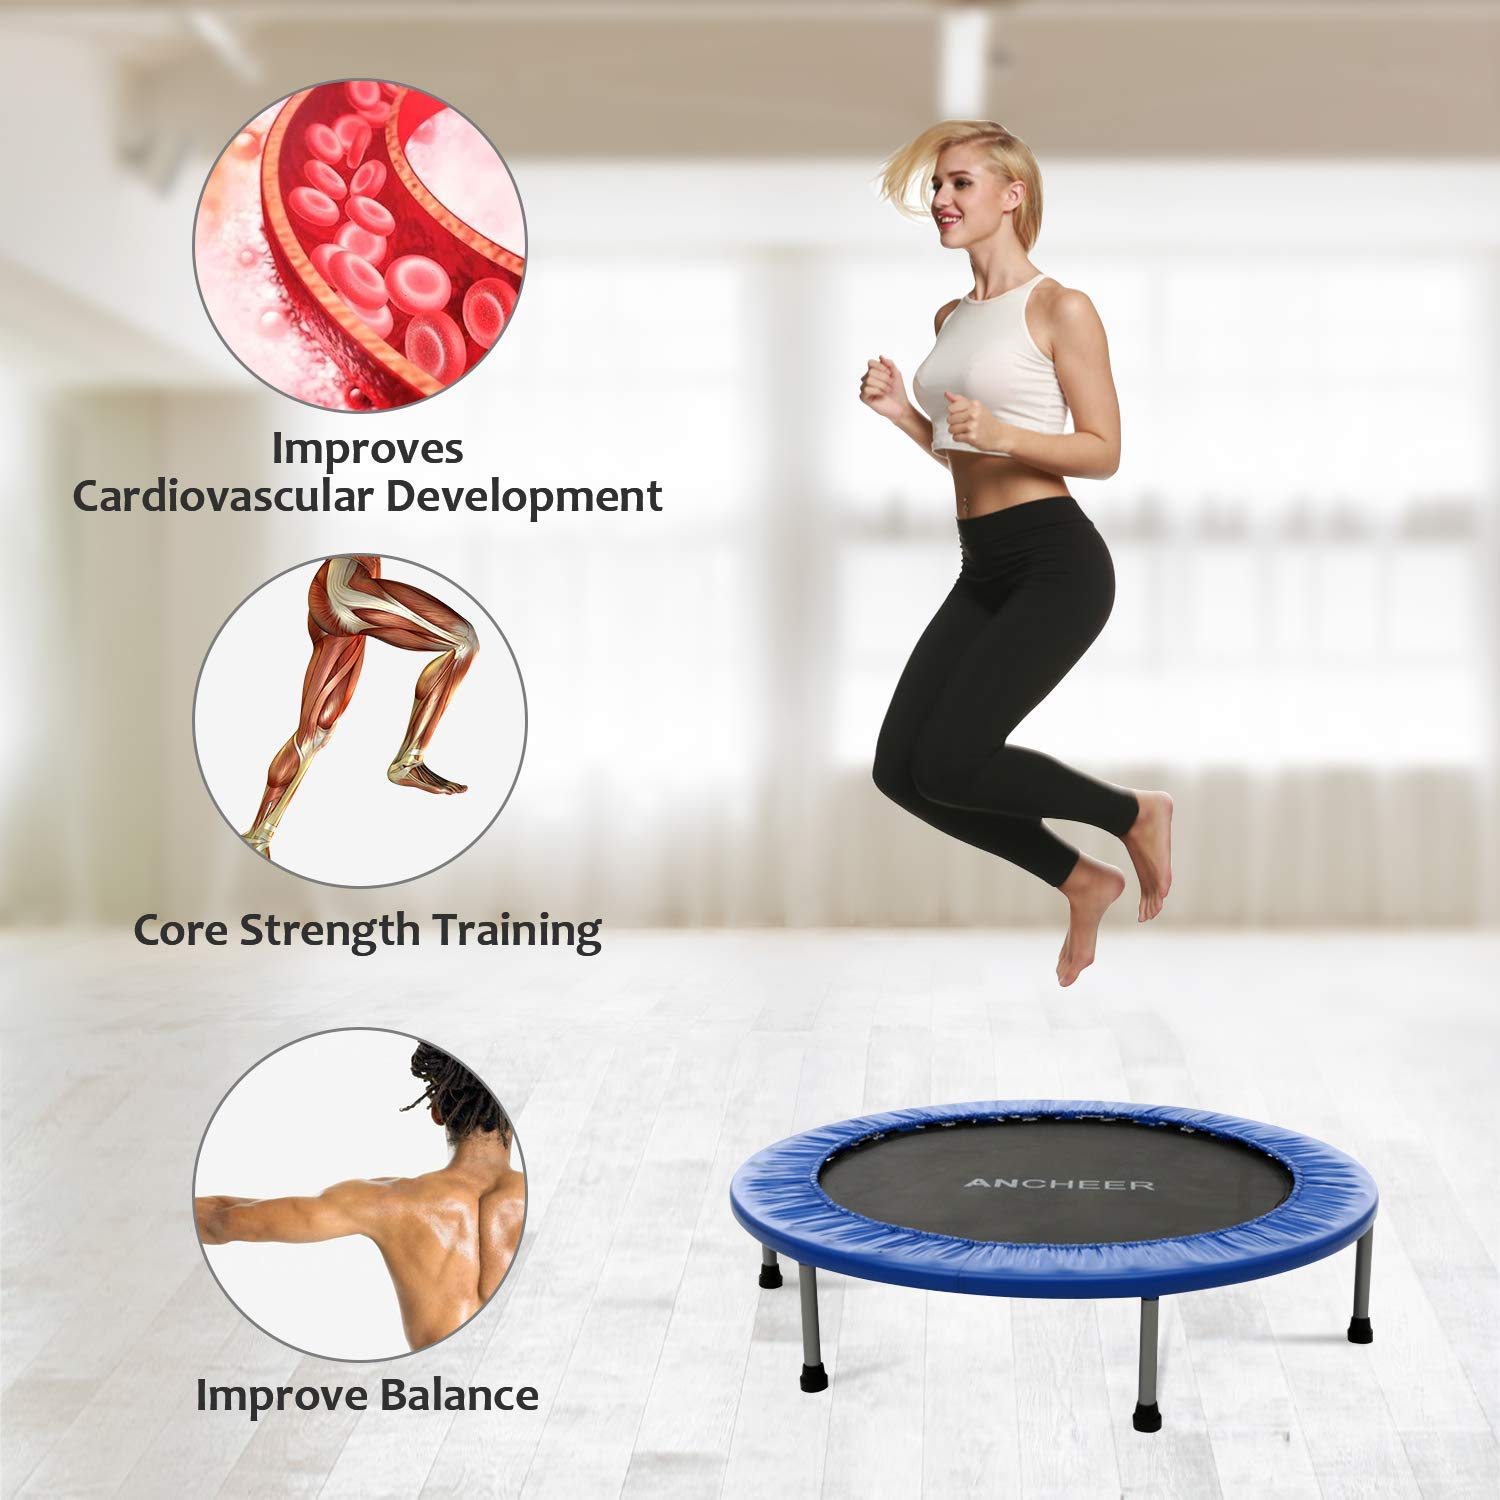 ANCHEER Max Load 220lbs Rebounder Trampoline with Safety Pad for Indoor Garden Workout Cardio Training (2 Sizes: 38 inch/40 inch, Two Modes: Folding/Not Folding) (Renewed) by ANCHEER (Image #6)